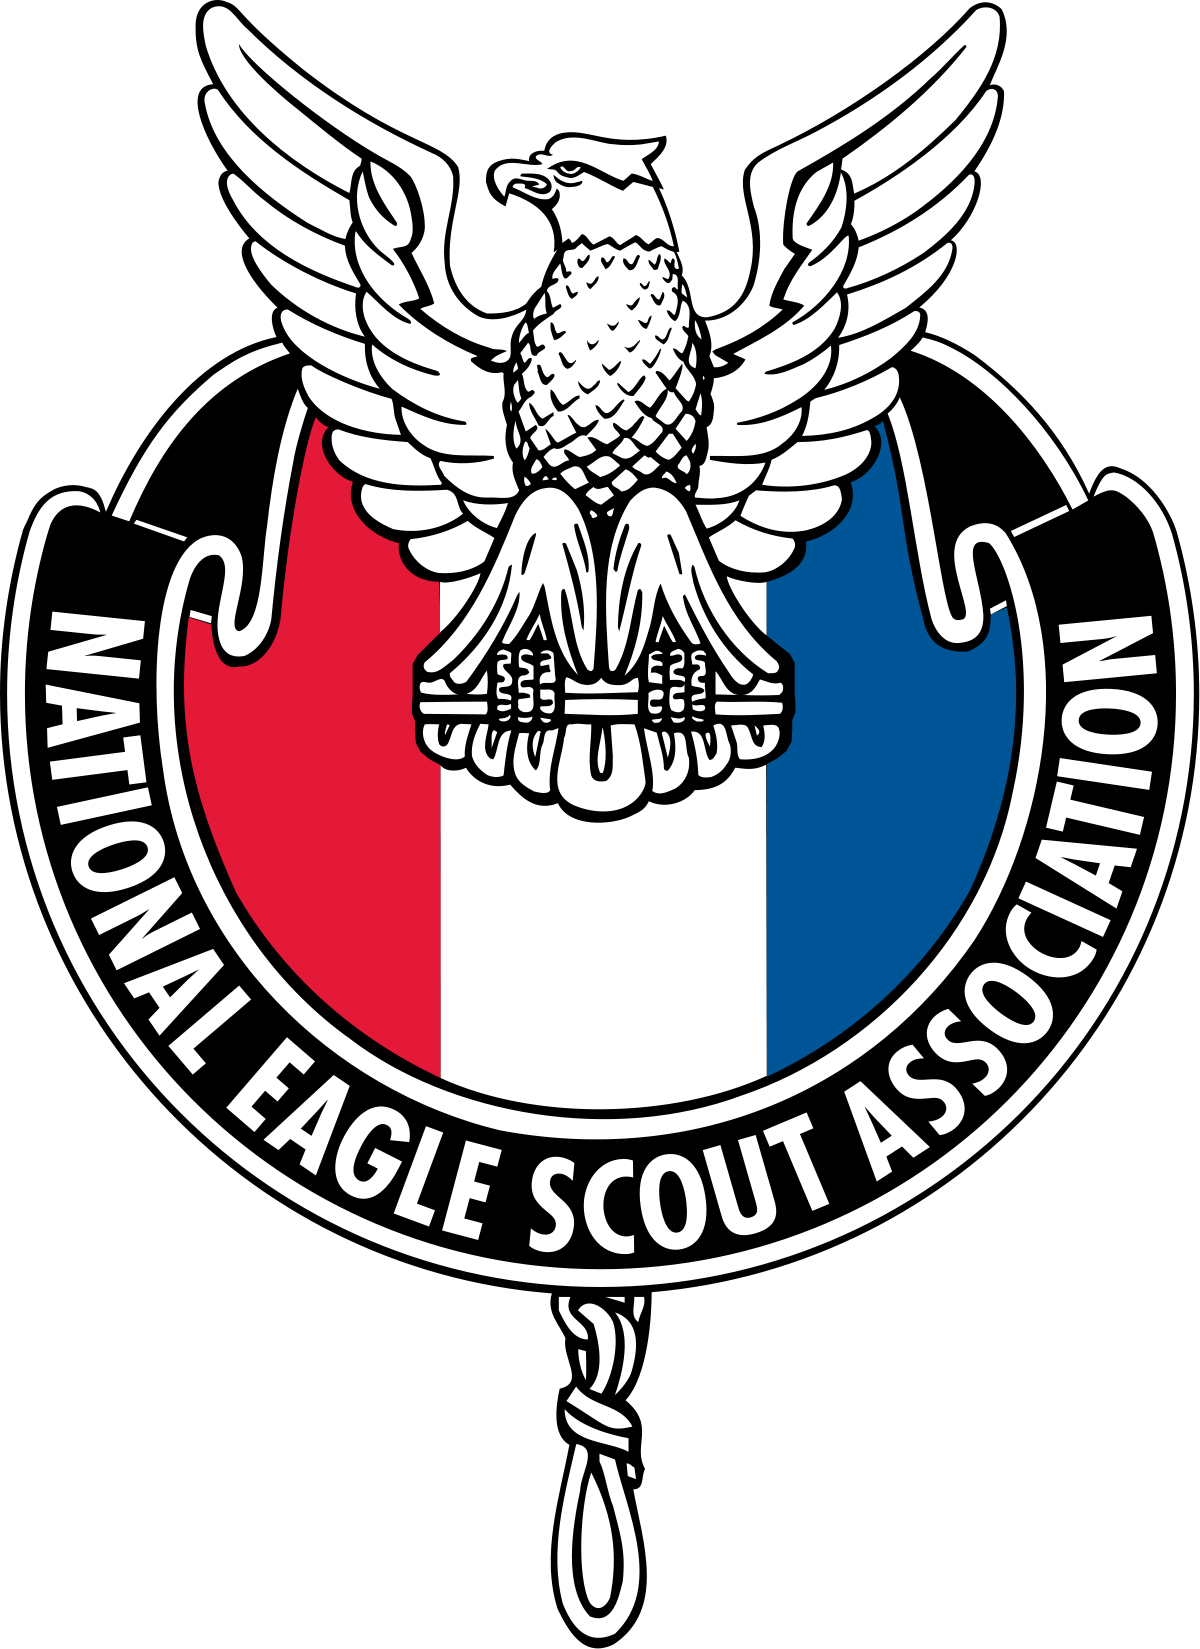 Conflict clipart society. National eagle scout association